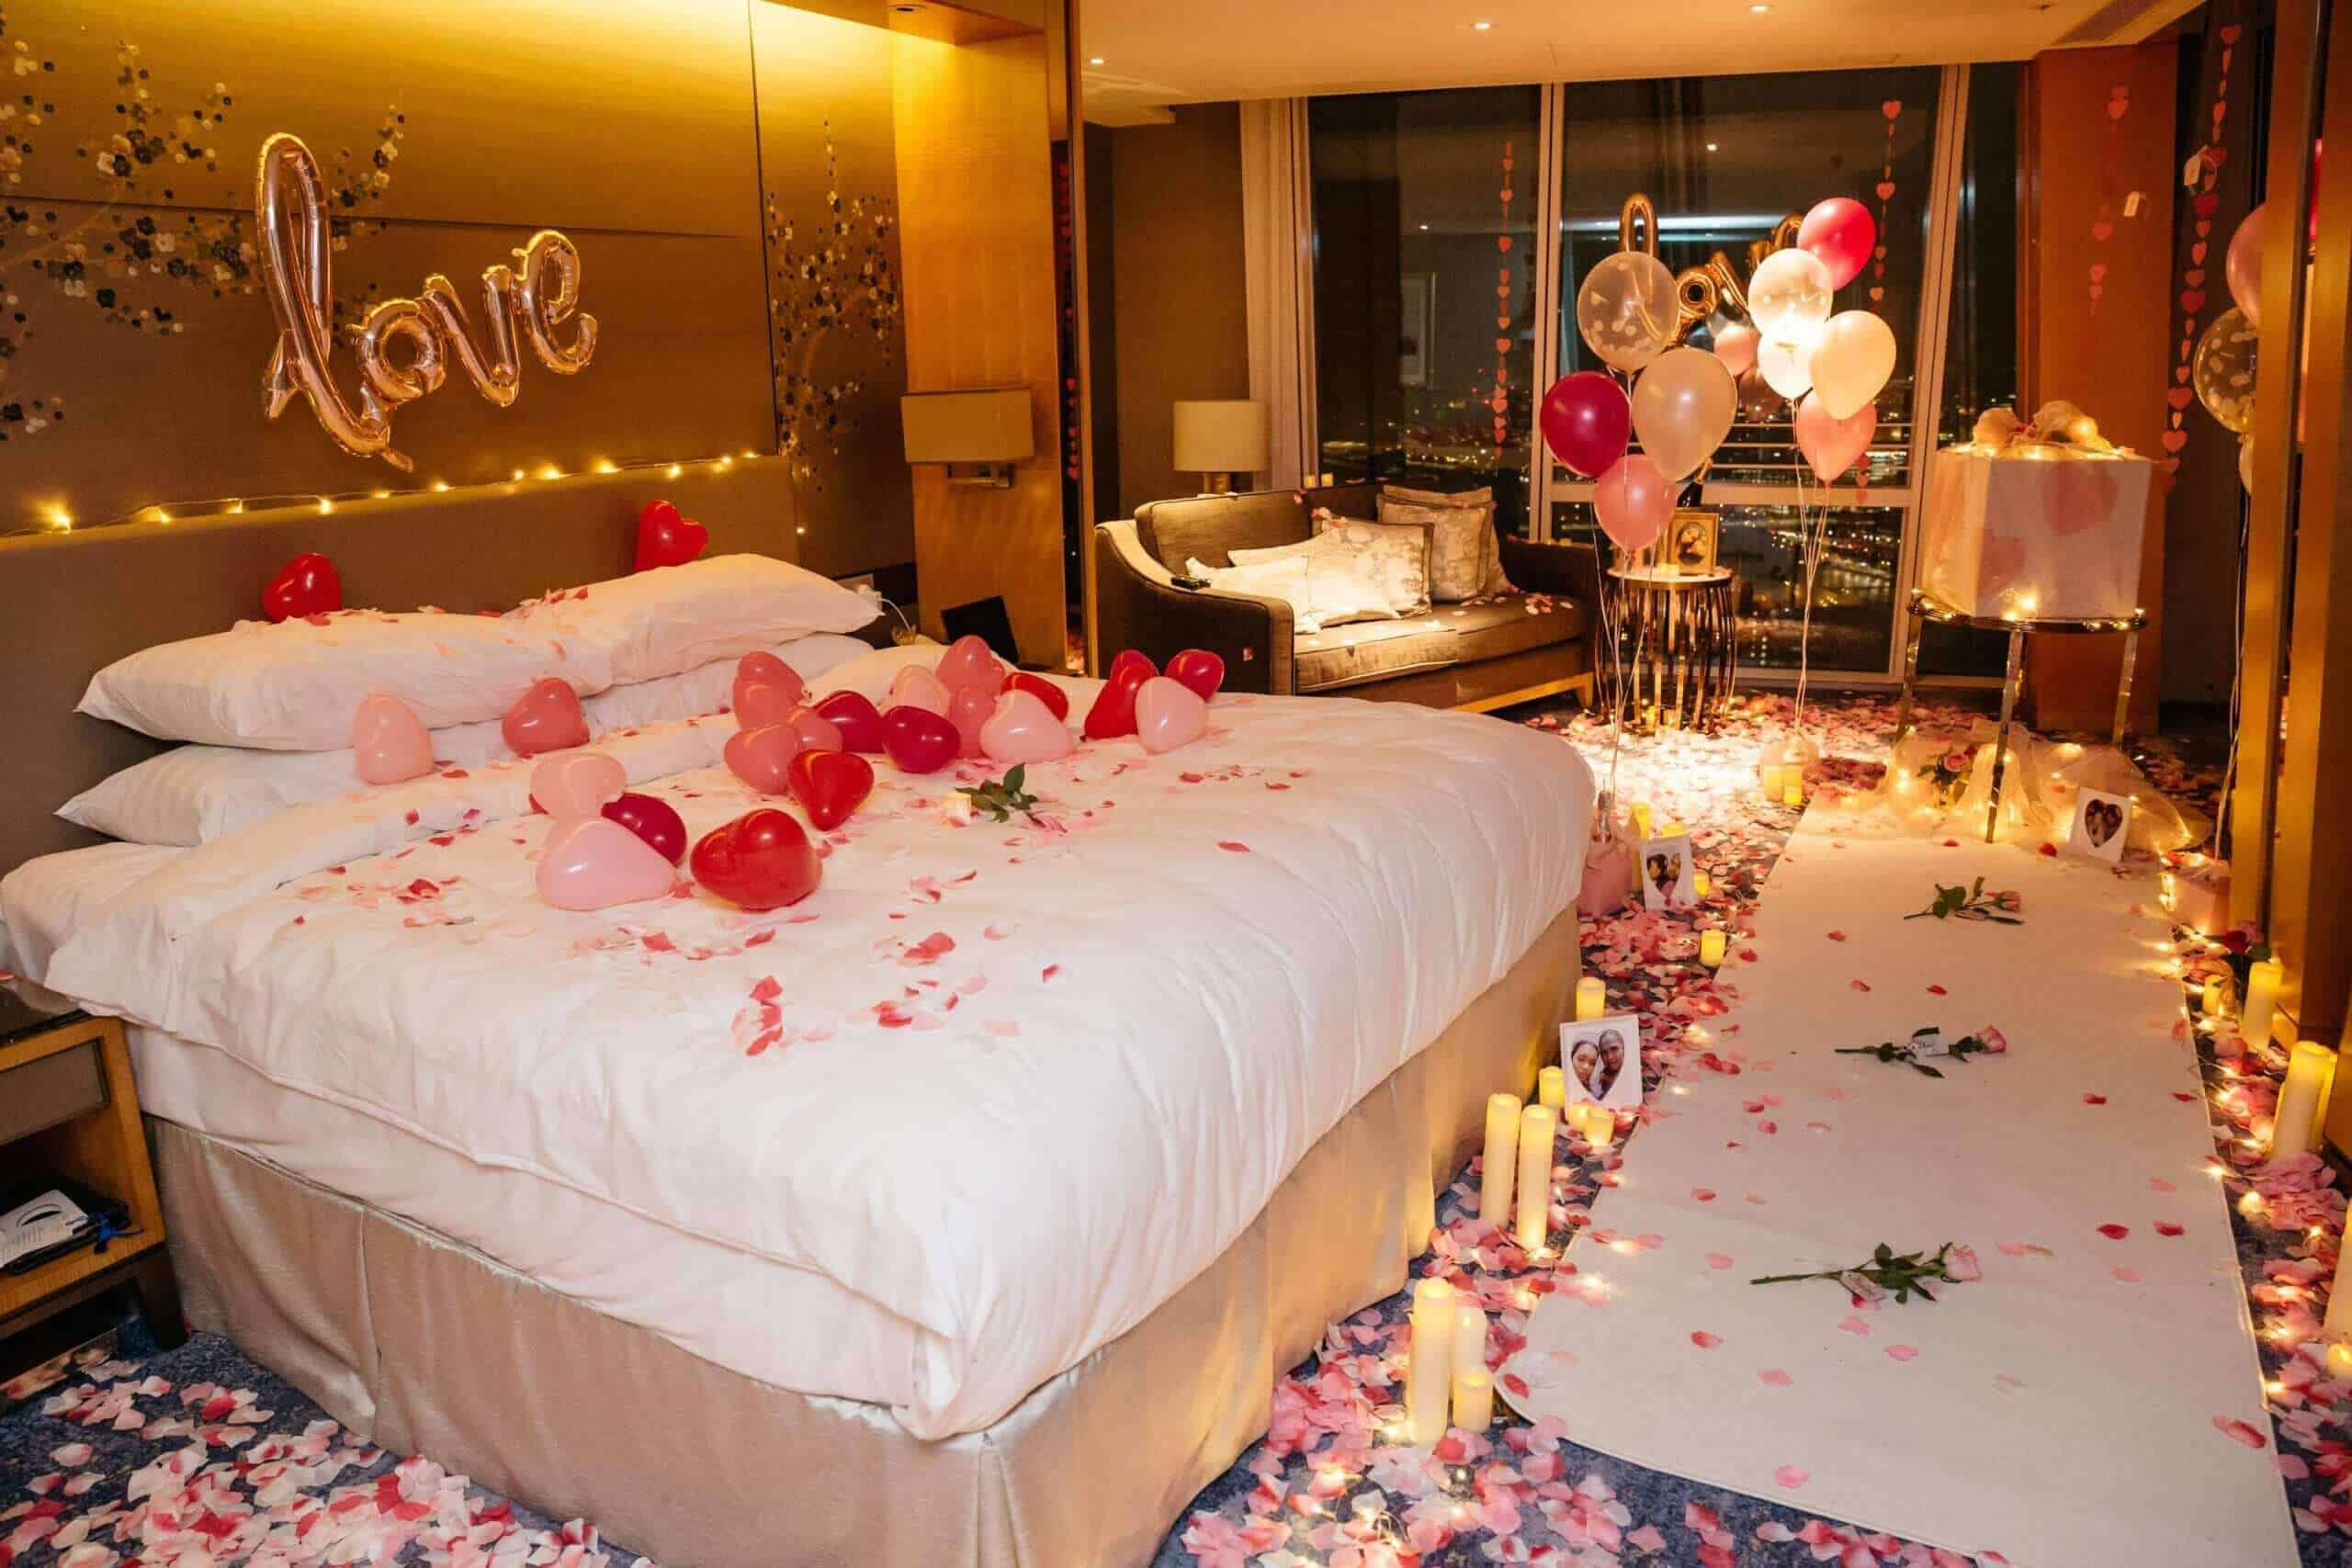 Decorate Your Room This Valentine Season